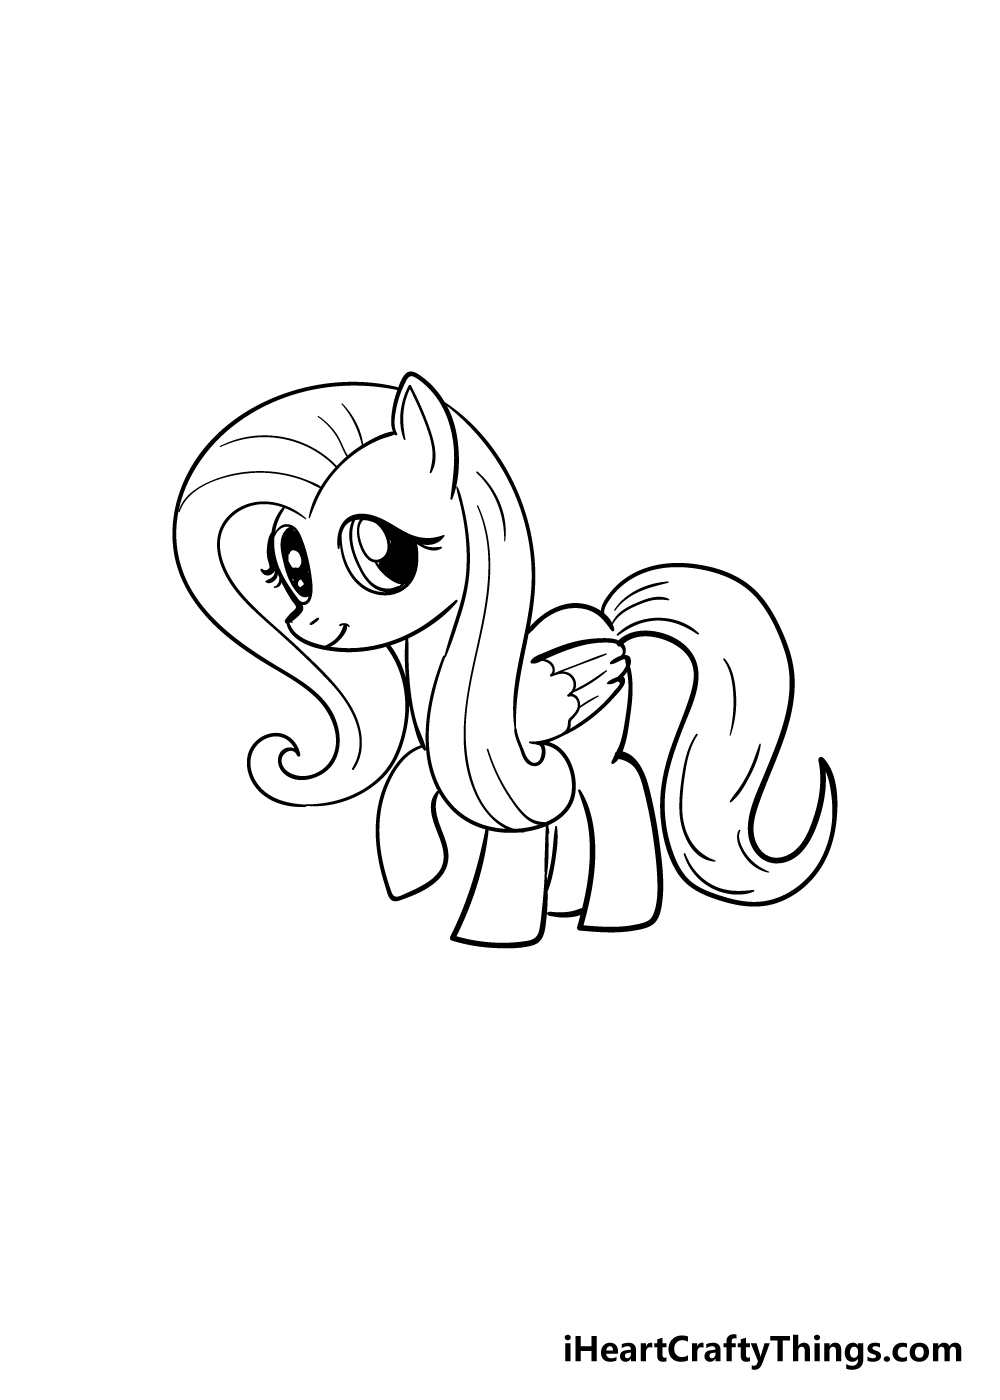 my little pony drawing step 7